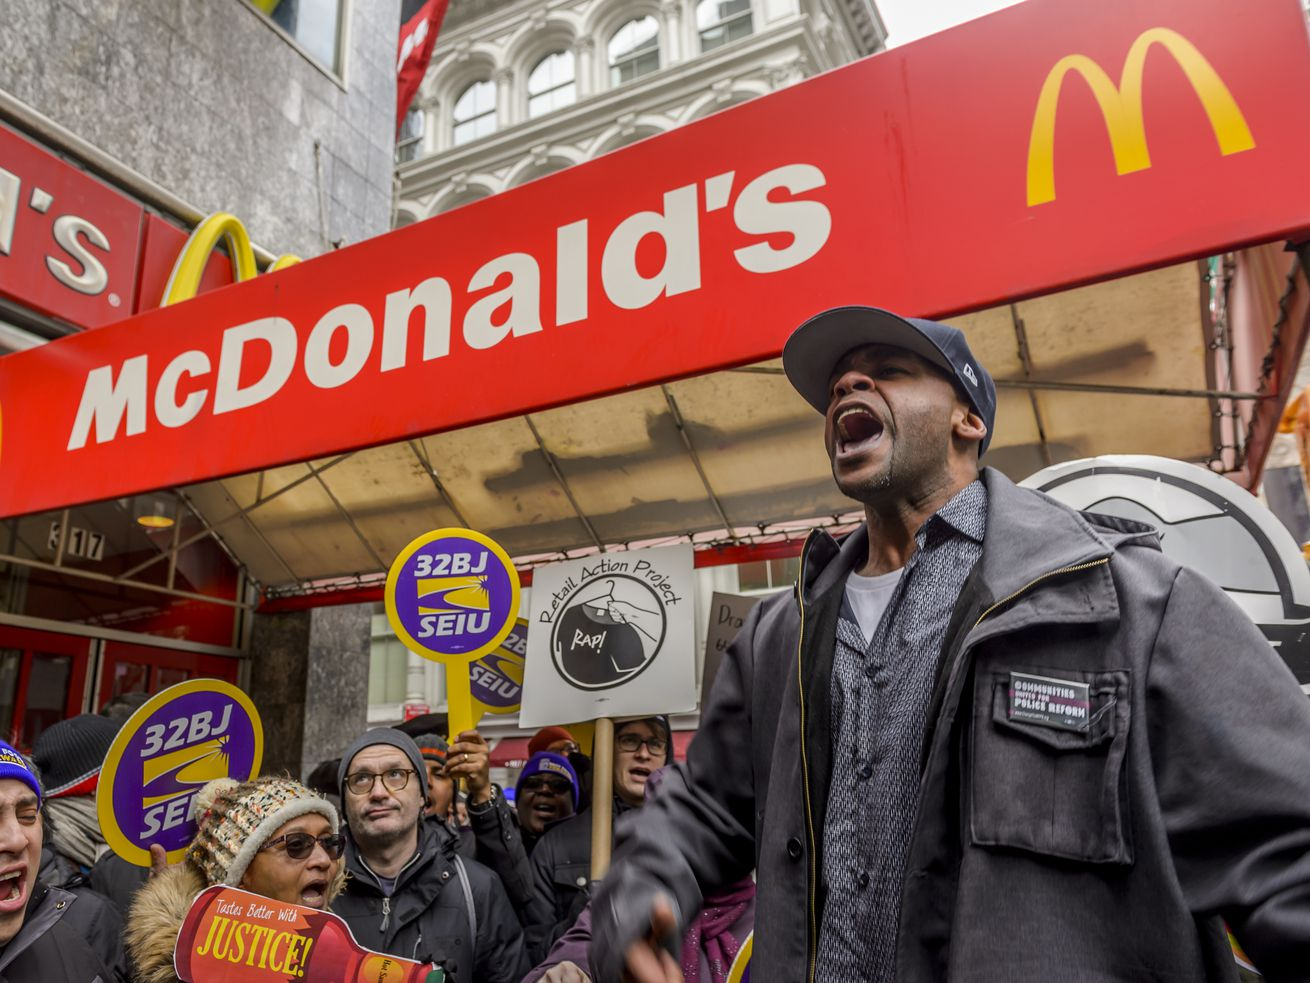 Fast-food workers have been pushing for a $15 minimum wage for years.